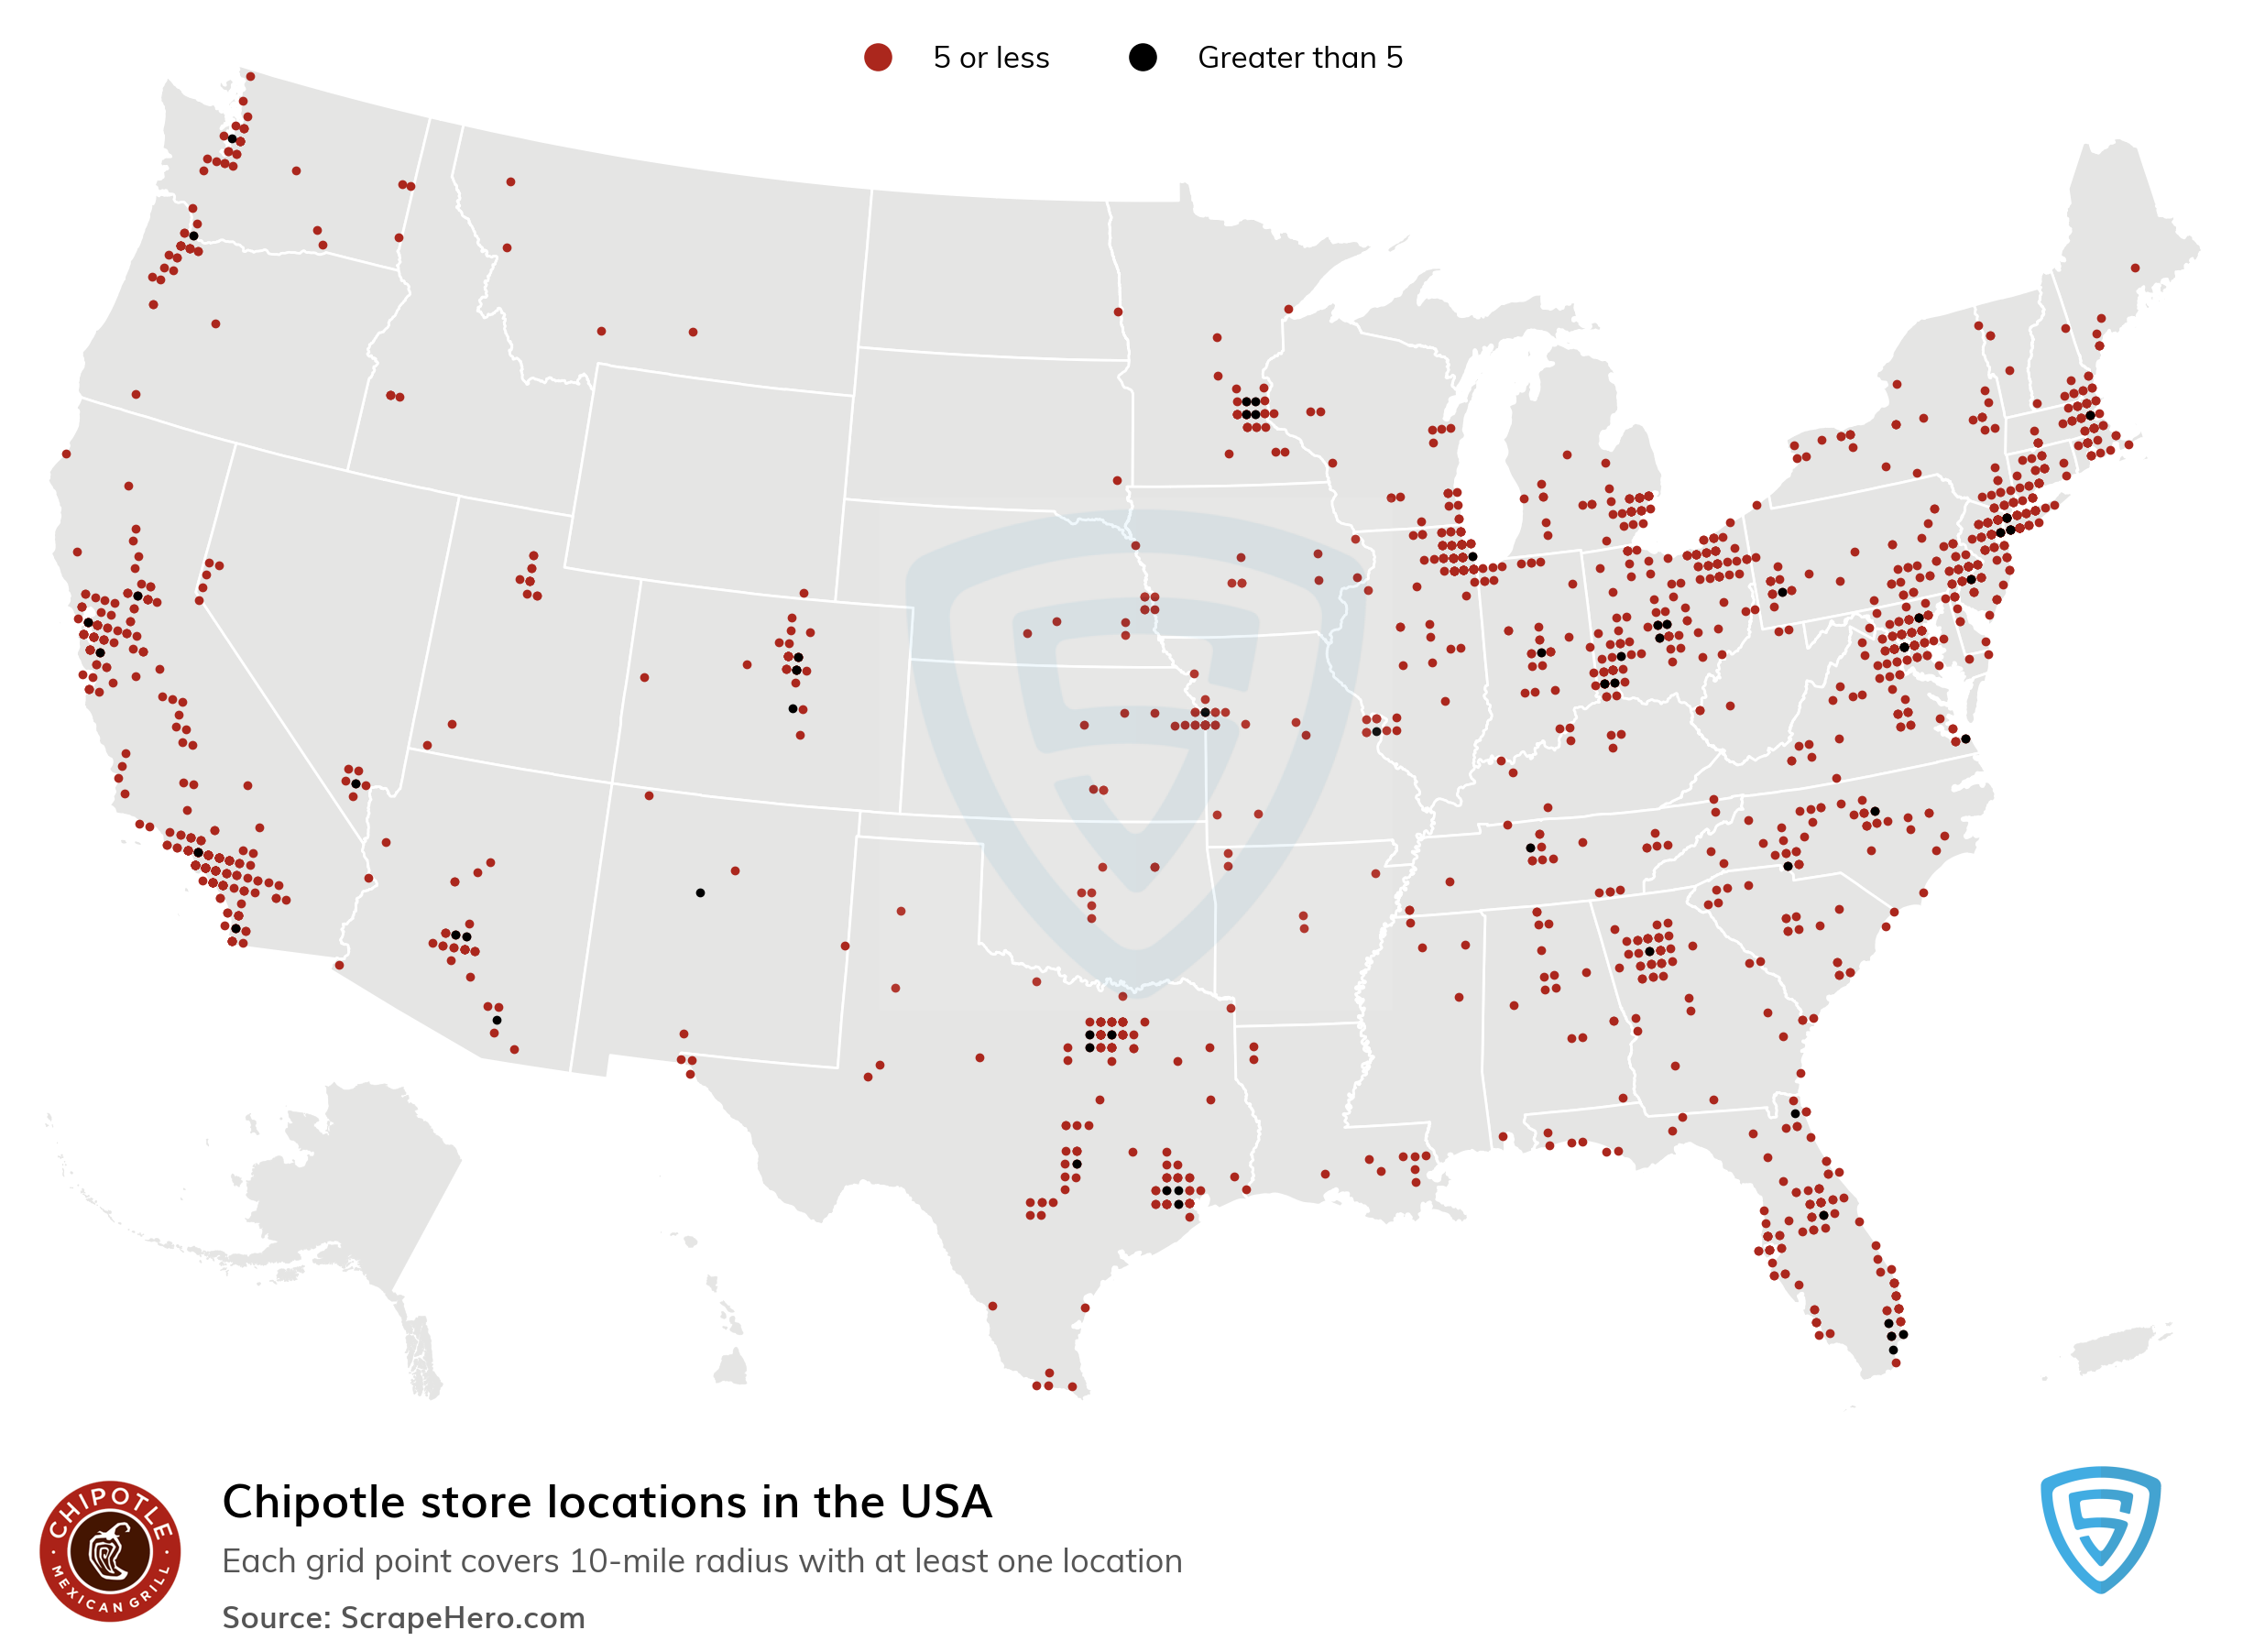 Large Map of Chipotle locations in the USA